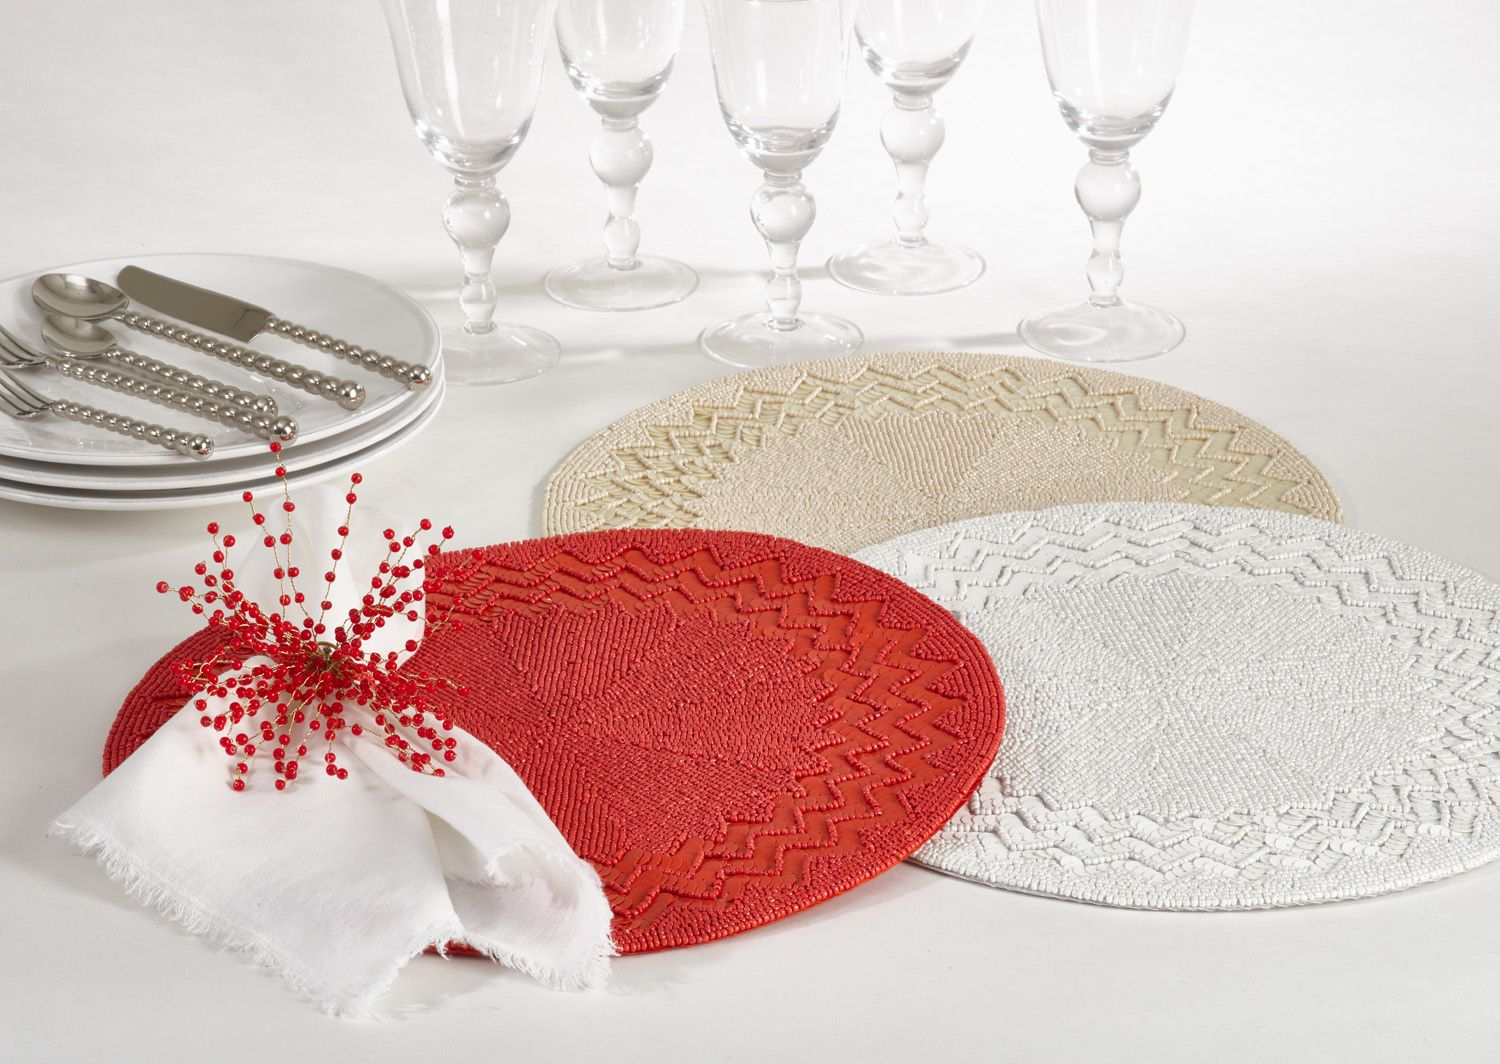 Siena Design Placemats In Coral Ivory White Placemats Table Linen Napkins Linen Napkins